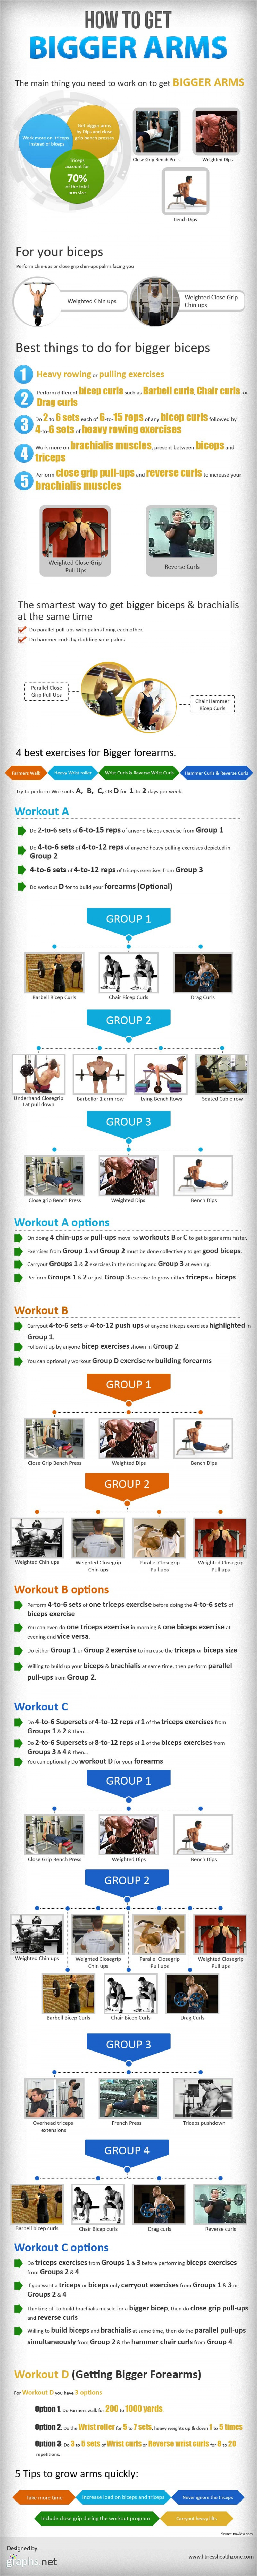 How to Get Bigger Arms Infographic